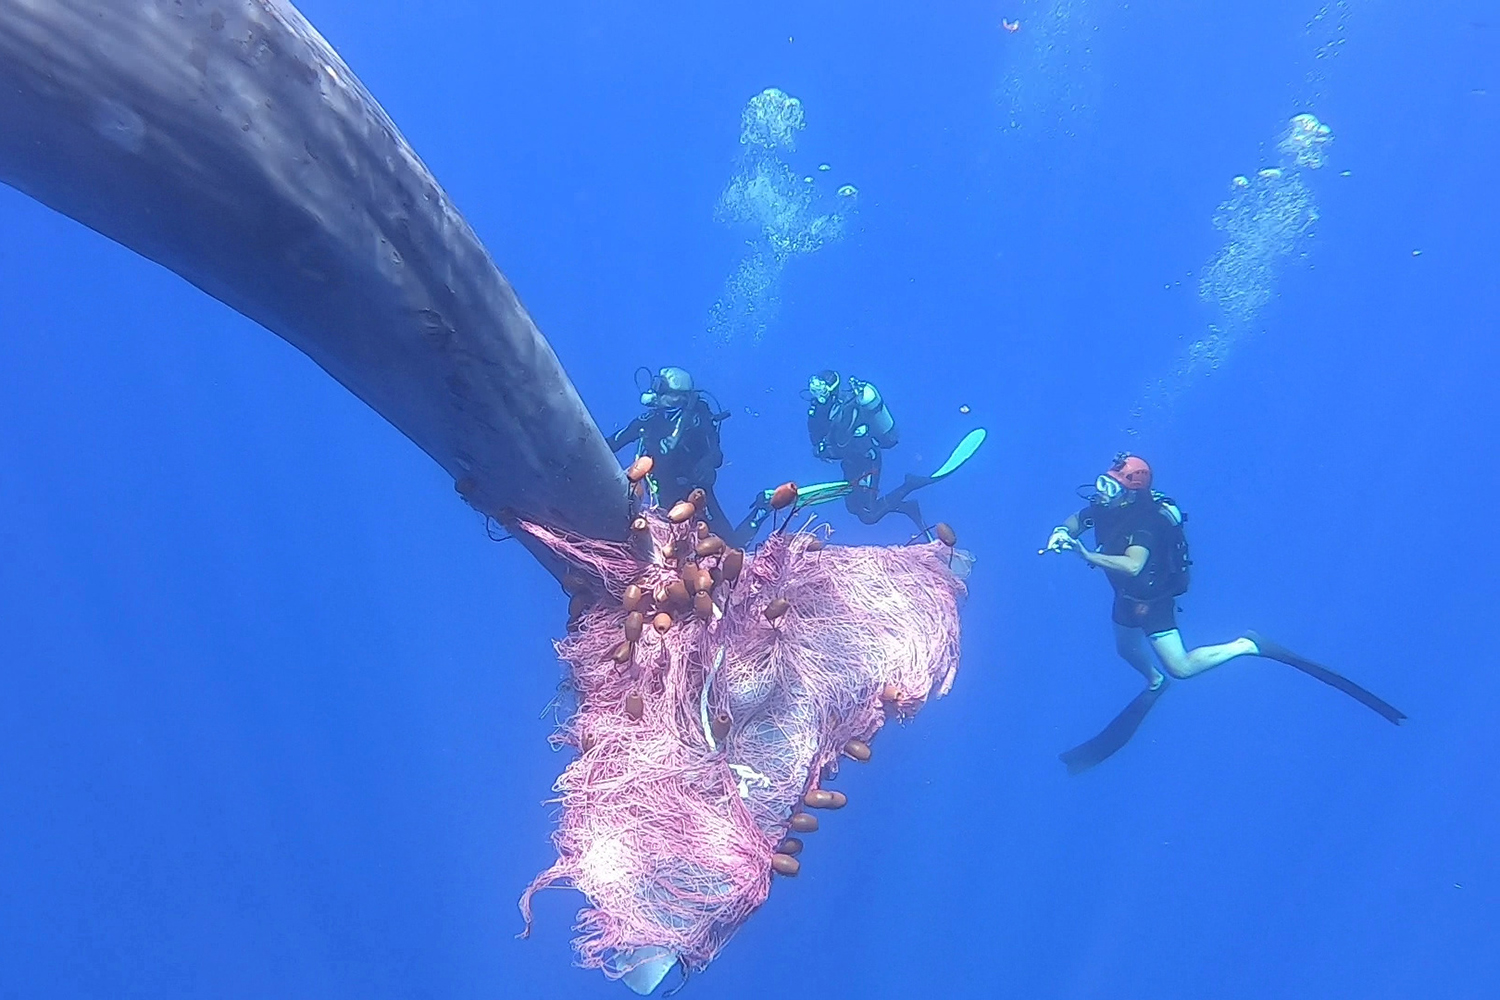 Italian coast guard divers work to free a sperm whale caught in a fishing net north of the Sicilian Aeolian Islands in Italy on July 19 in this still image taken from a video. Carmelo Isgro/MuMa Museo del Mare di Milazzo/Via Reuters